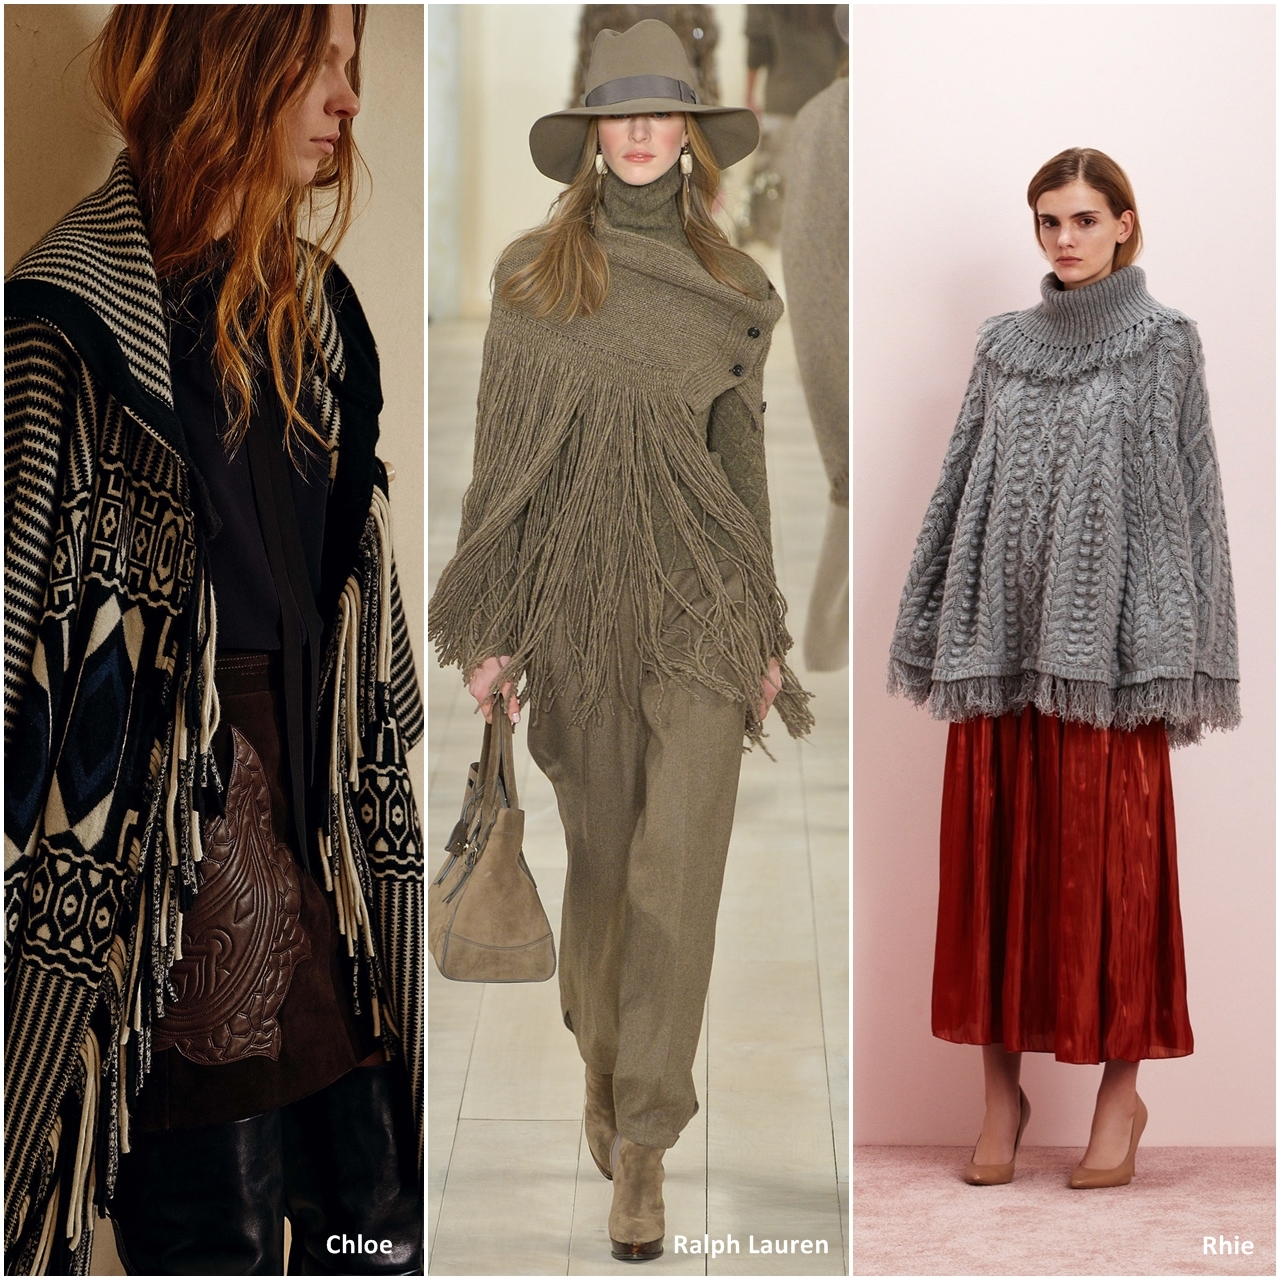 creationsbyeve-eng: Poncho and capes, the perfect fashion trend for ...